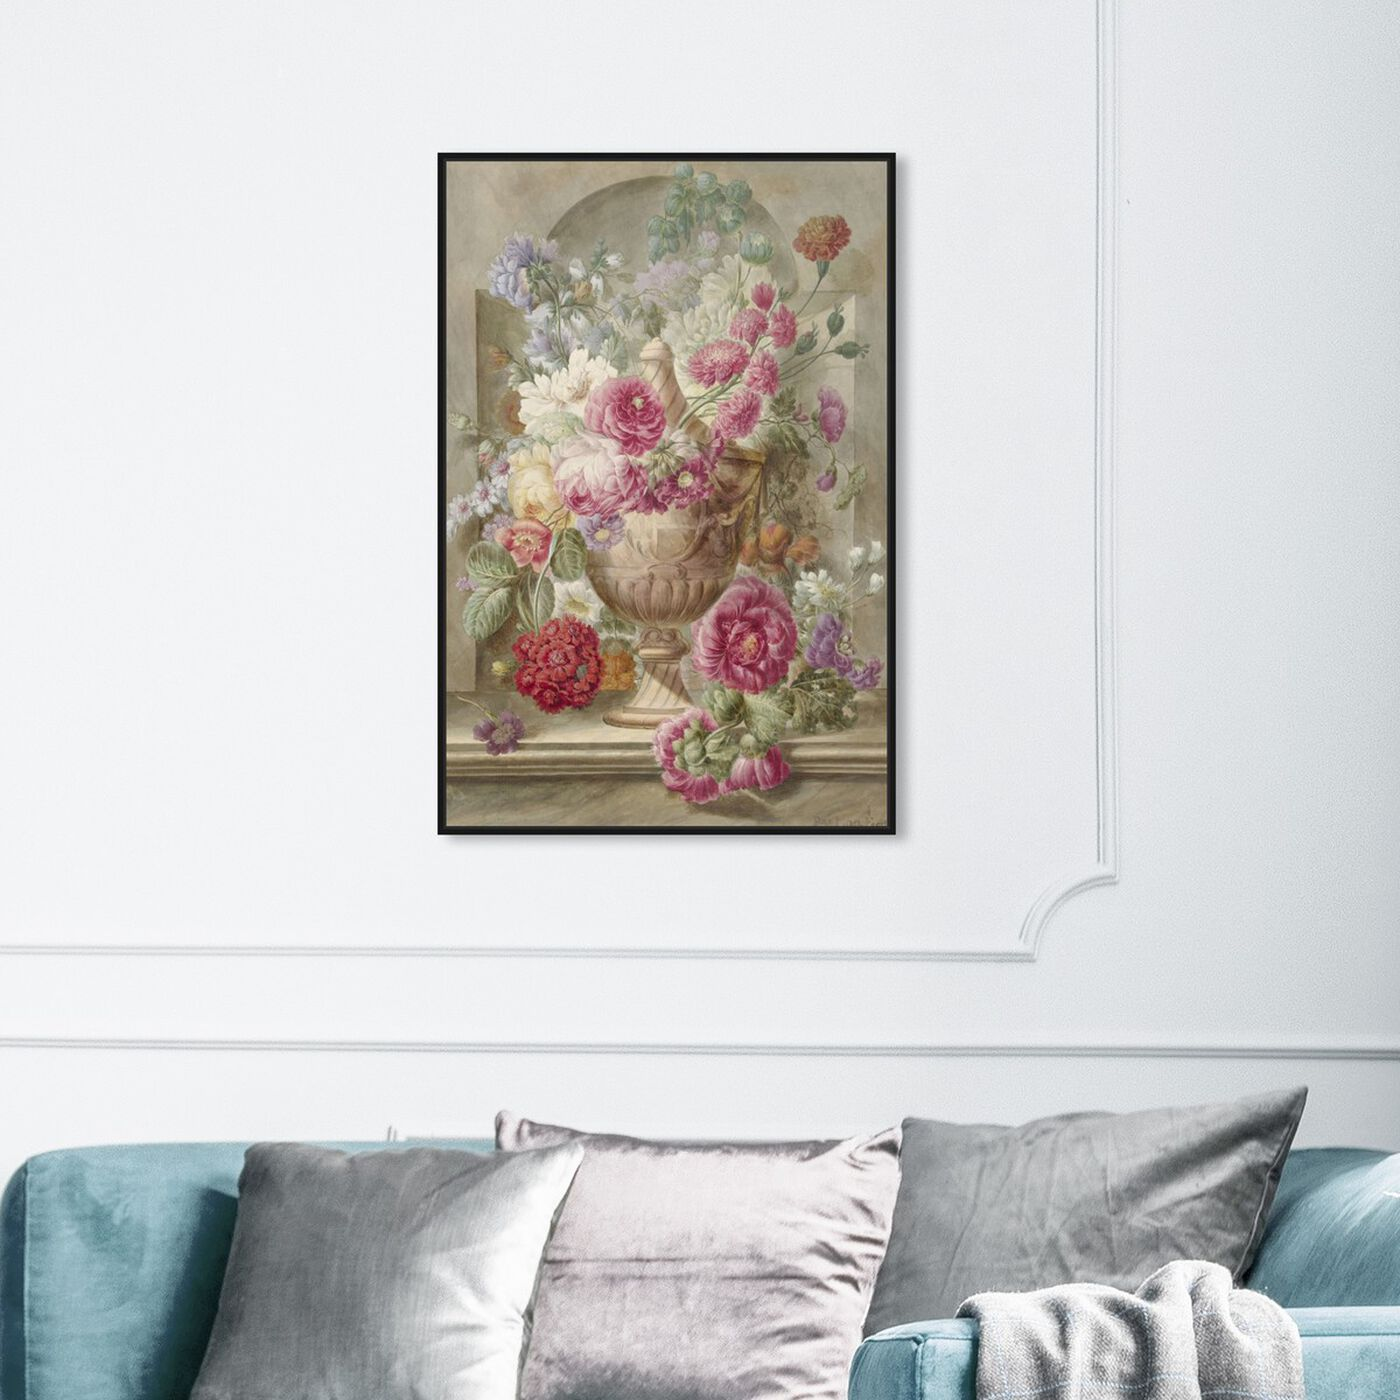 Hanging view of Flower Arrangement XII - The Art Cabinet featuring floral and botanical and florals art.